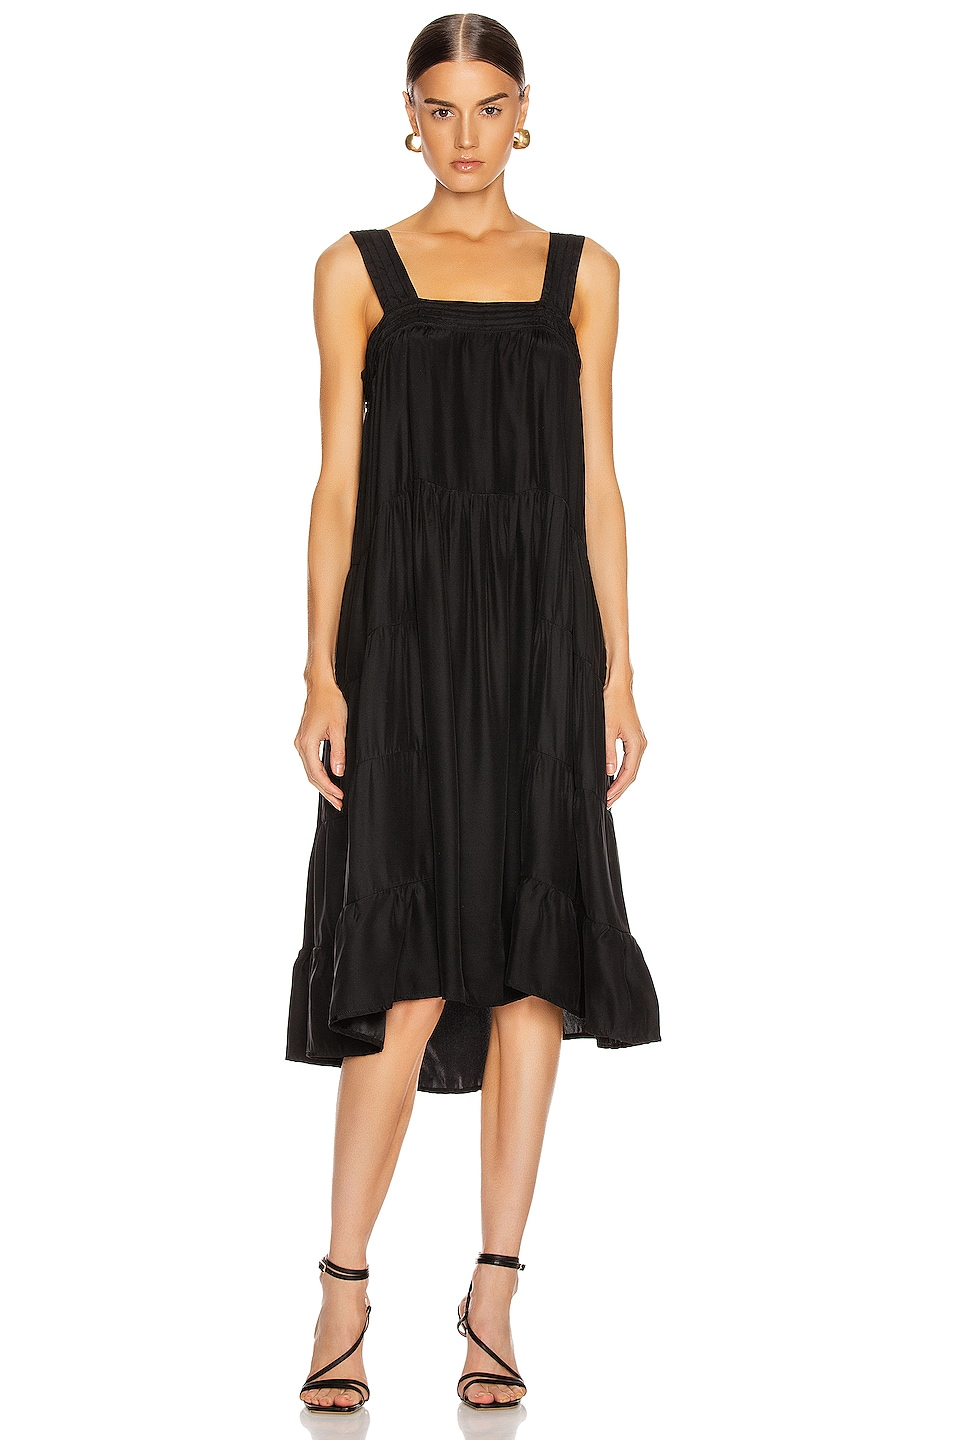 Image 1 of Natalie Martin Jasmine Dress in Black